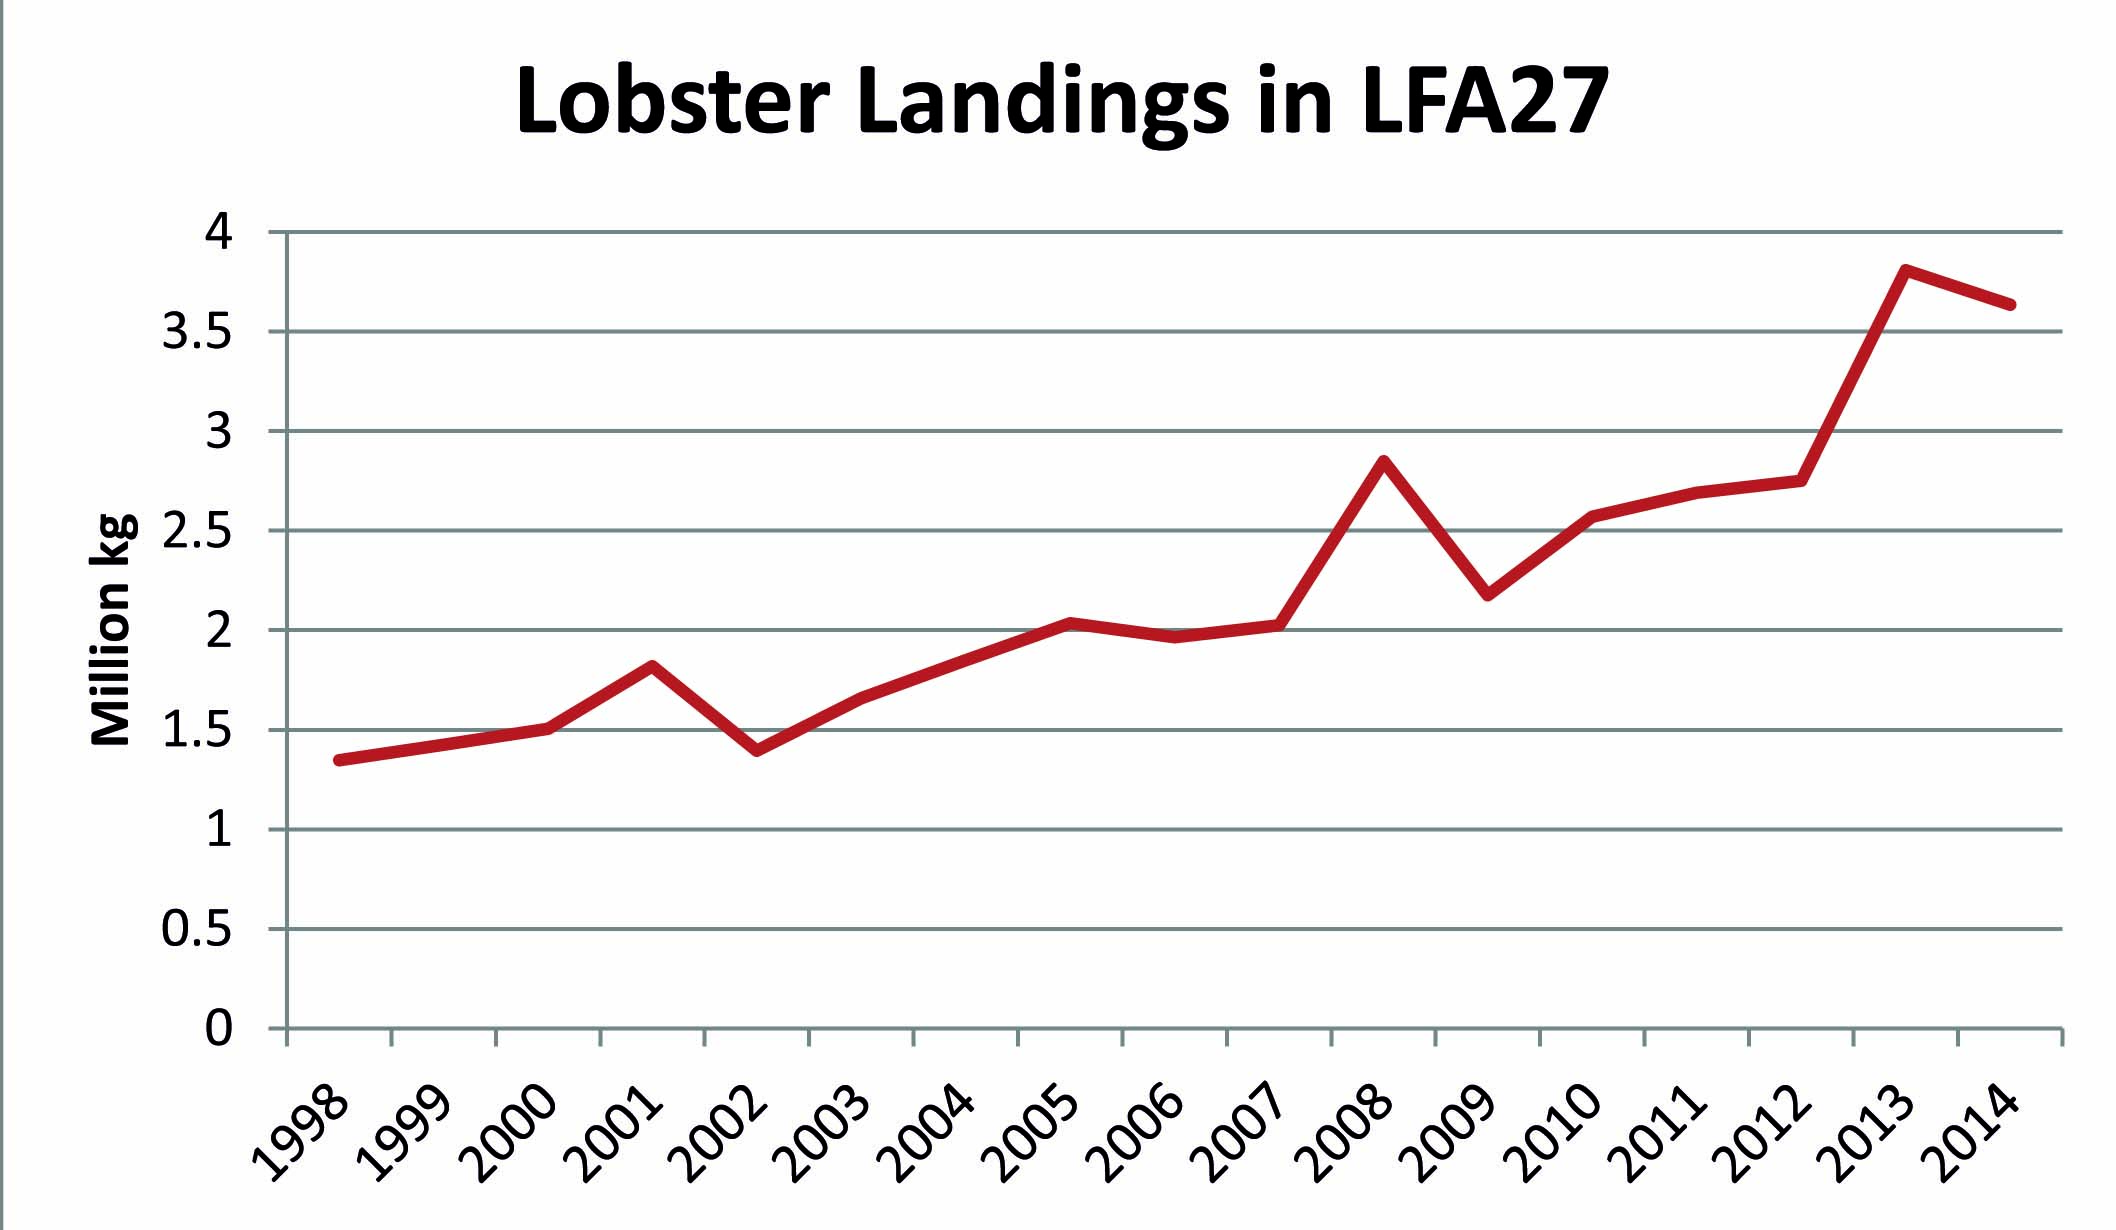 Lobster landings